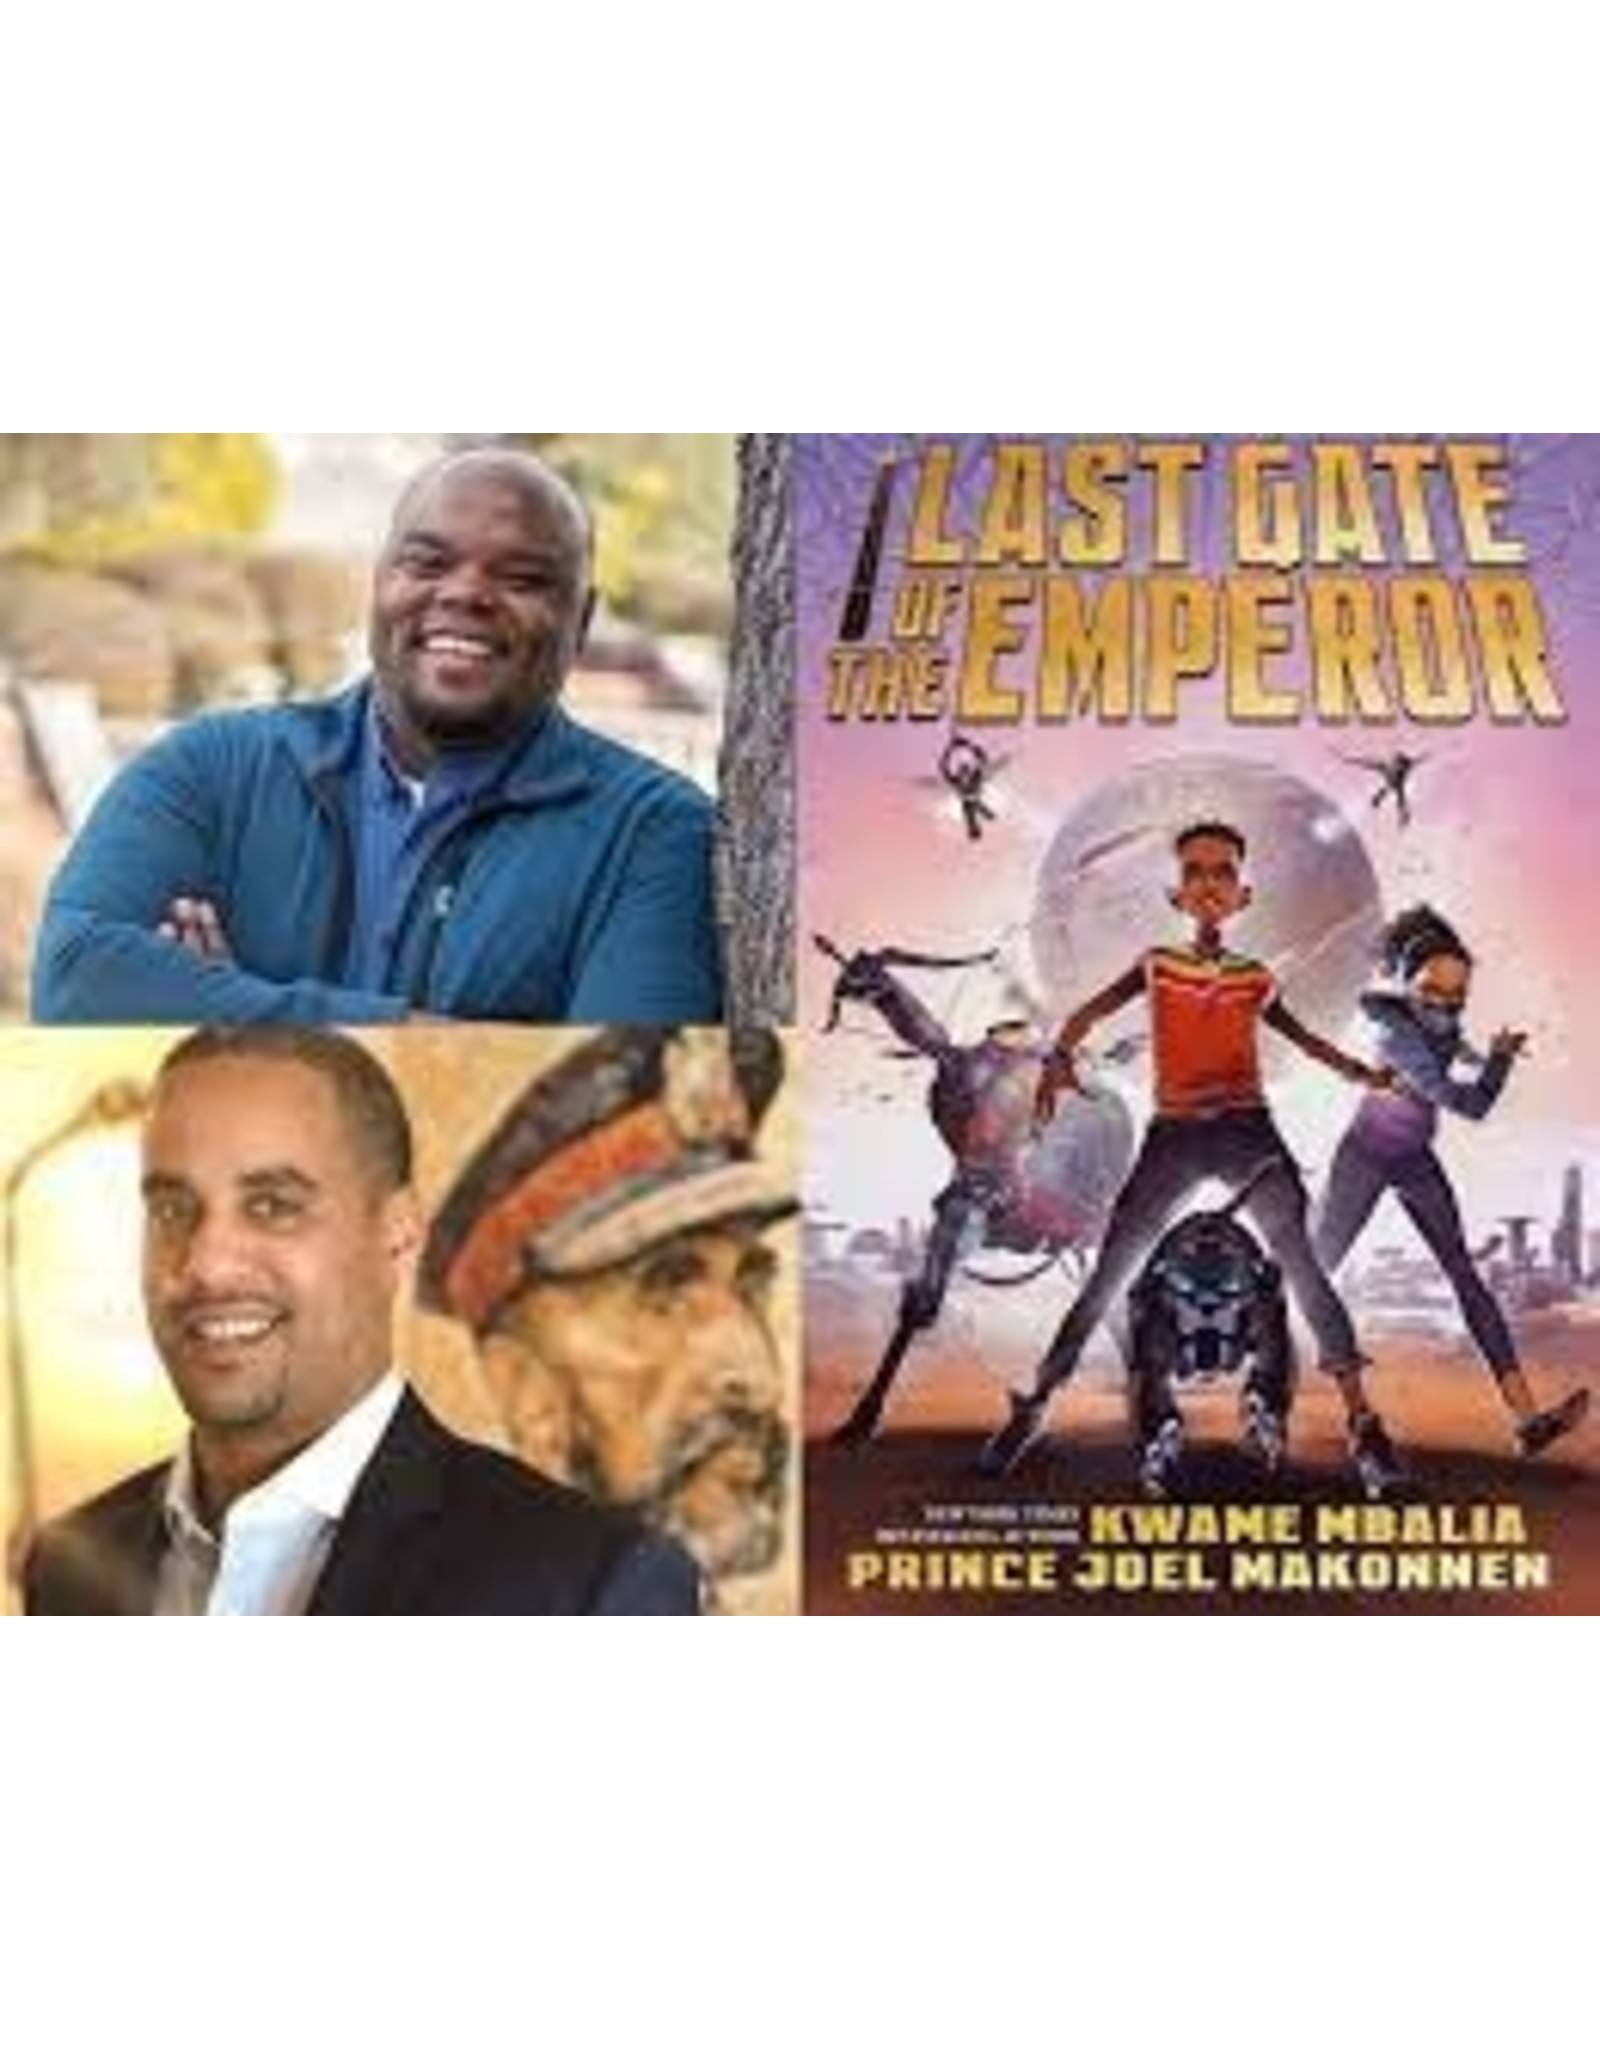 Books The Last Gate of the Emperor by Kwame Mbalia and Prince Joel Makonnen ( Signed Copies) (Holiday Catalog 21)